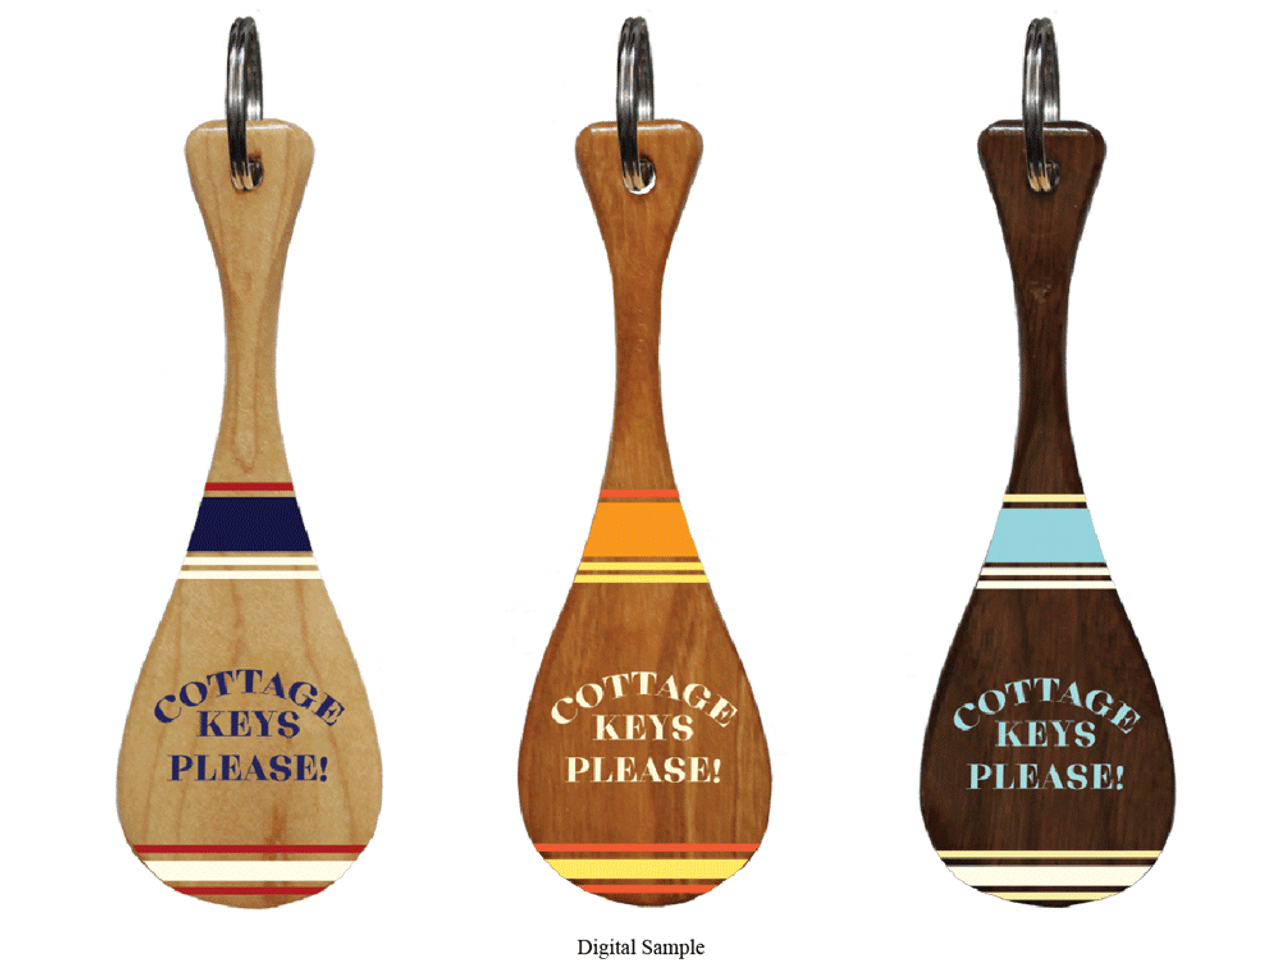 Cottage Keys Please Mini Paddle Keychain